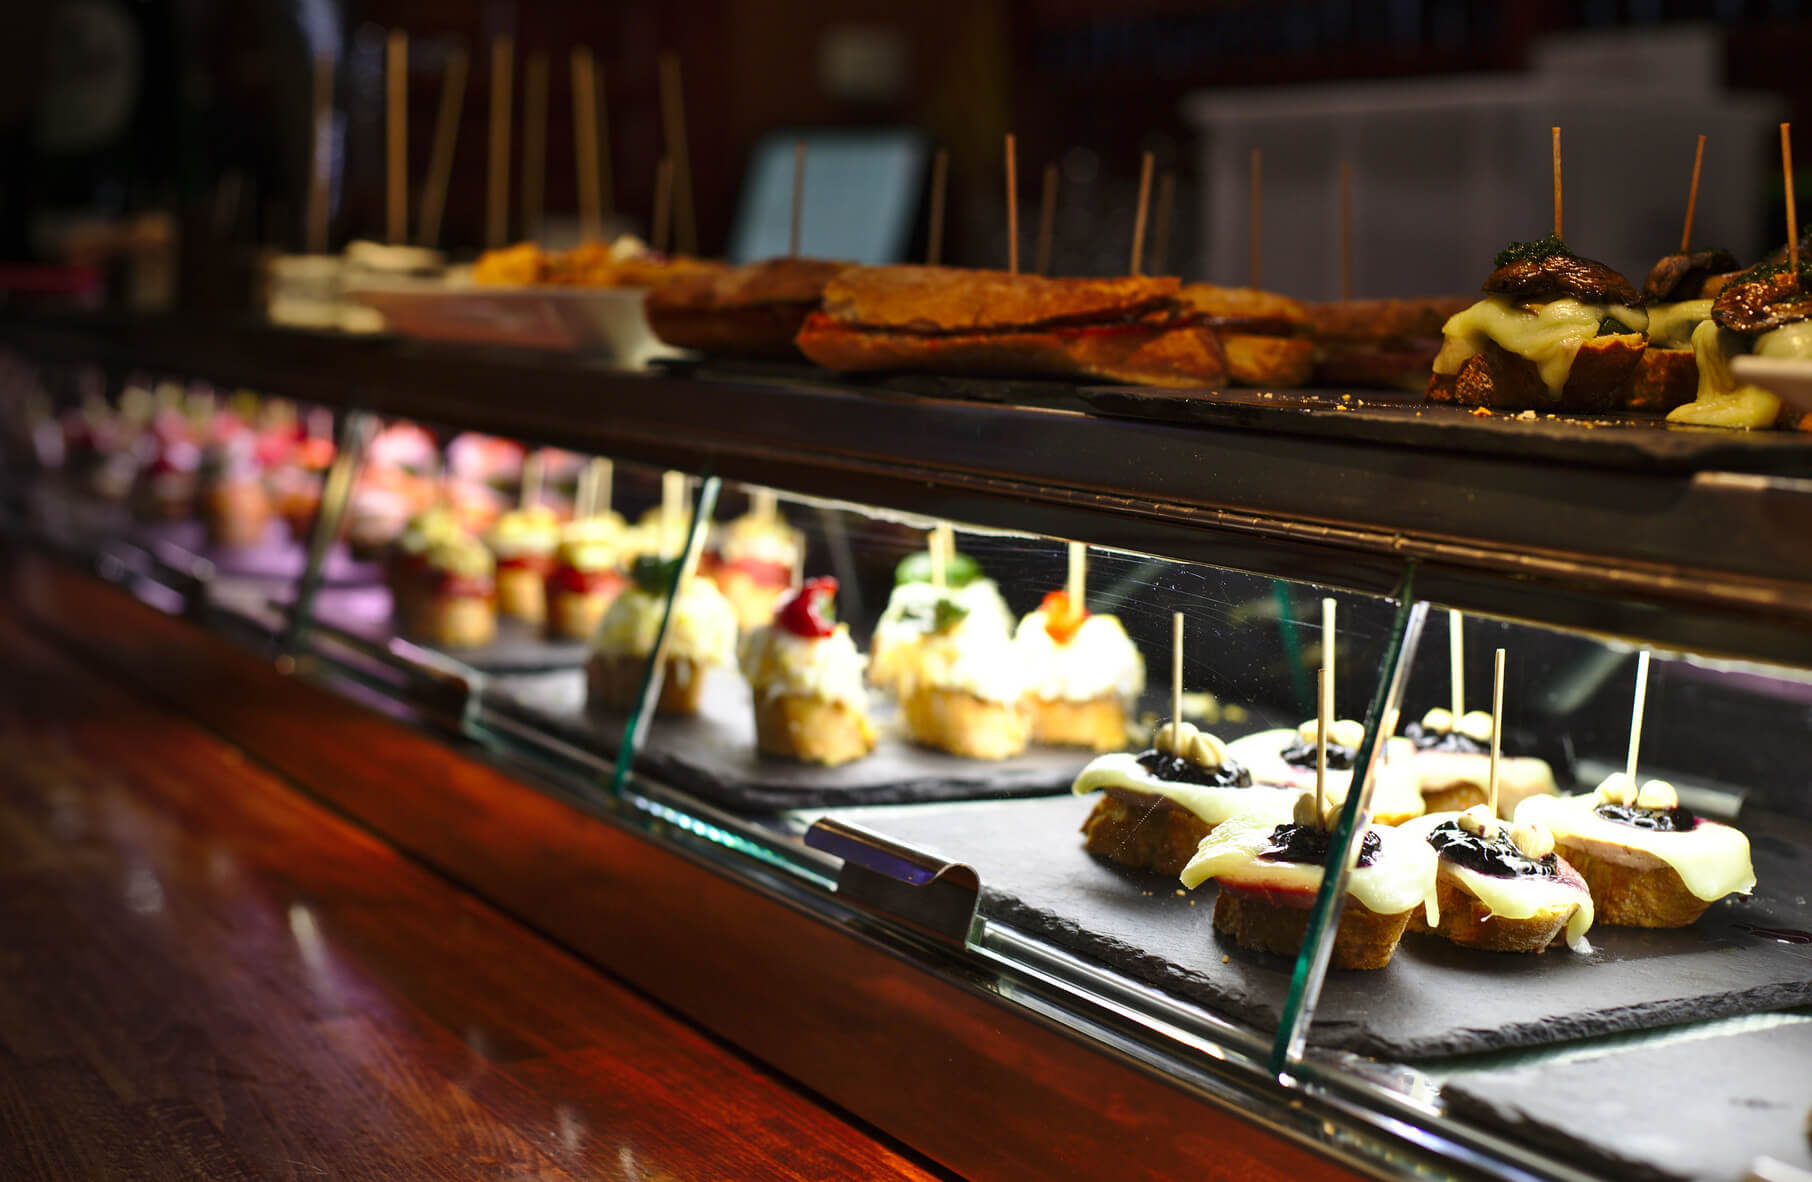 Pintxos at Lizarran. Taken by Dennis van Zuijlekom via Flickr.